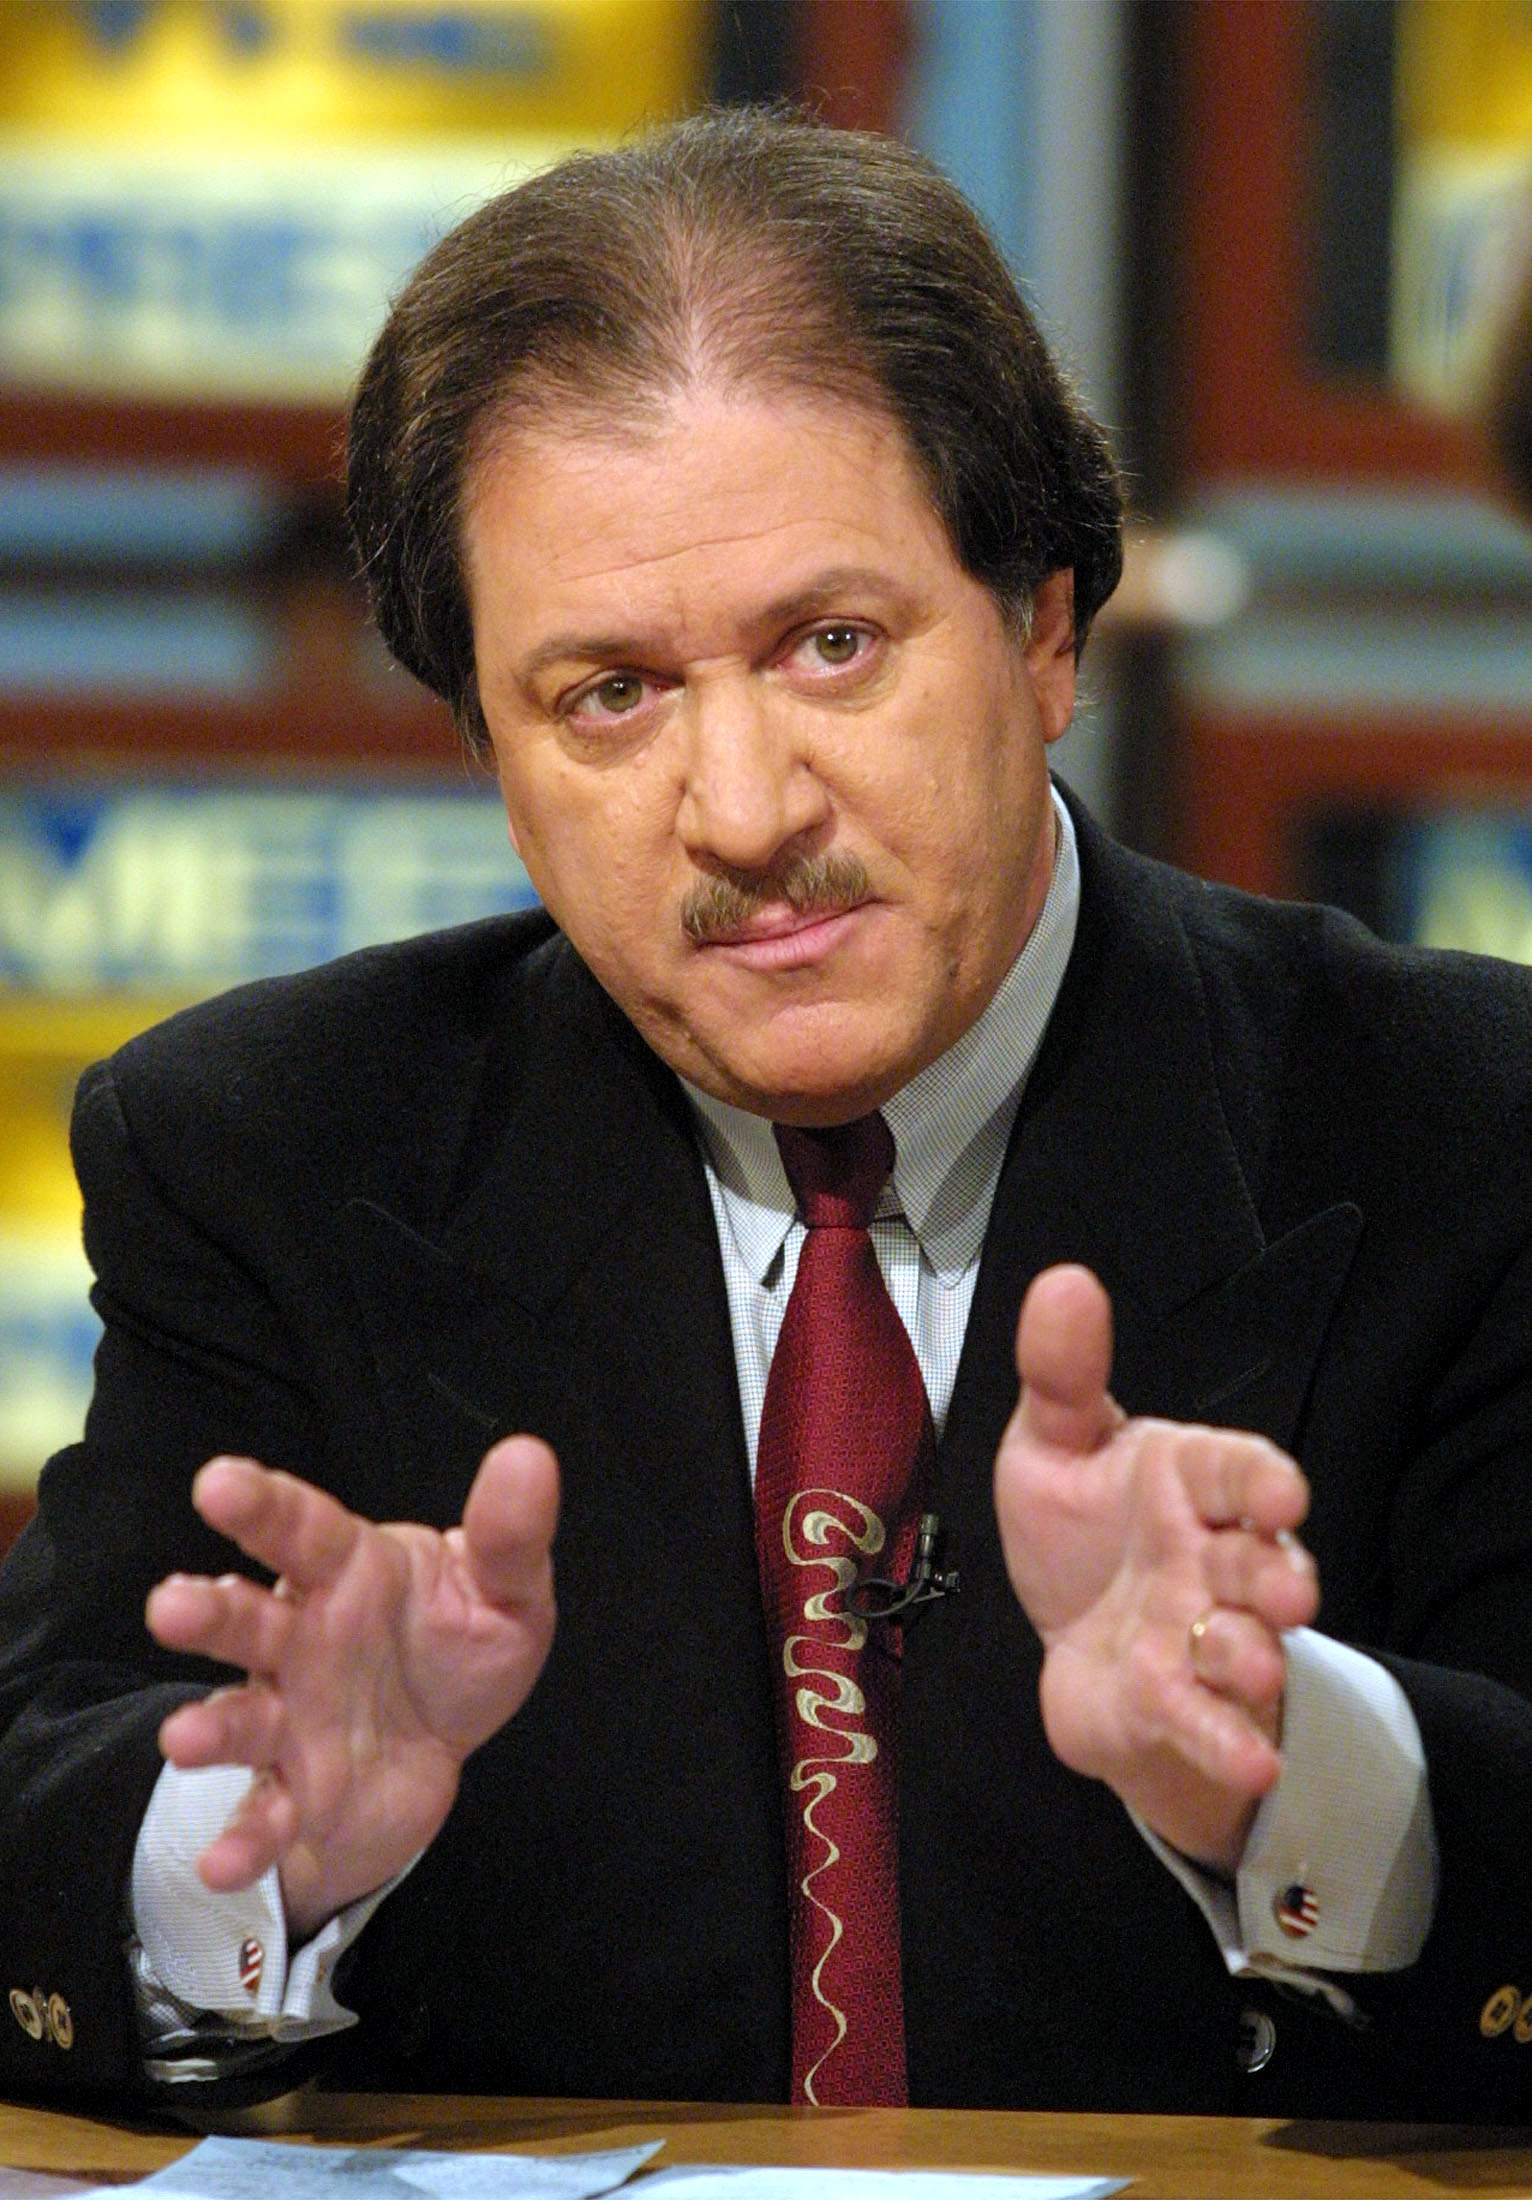 Joseph diGenova, attorney for Jack Quinn, discusses former president Bill Clinton's pardon of fugitive financier Marc Rich on  Meet the Press  February 11, 2001 at the NBC studio in Washington, D. C.